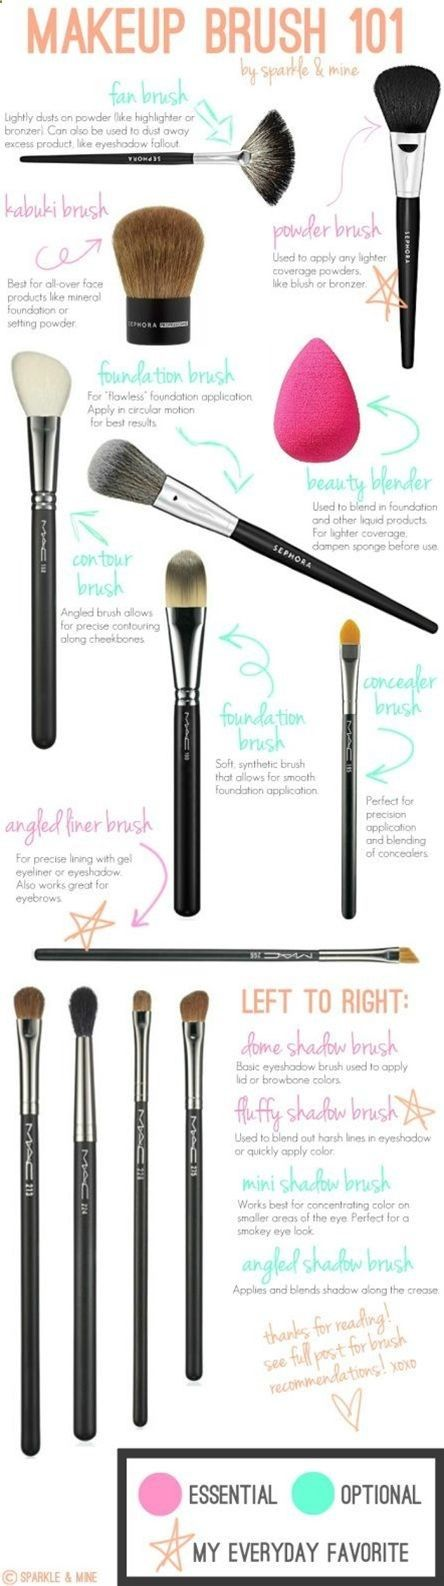 makeup brush 101